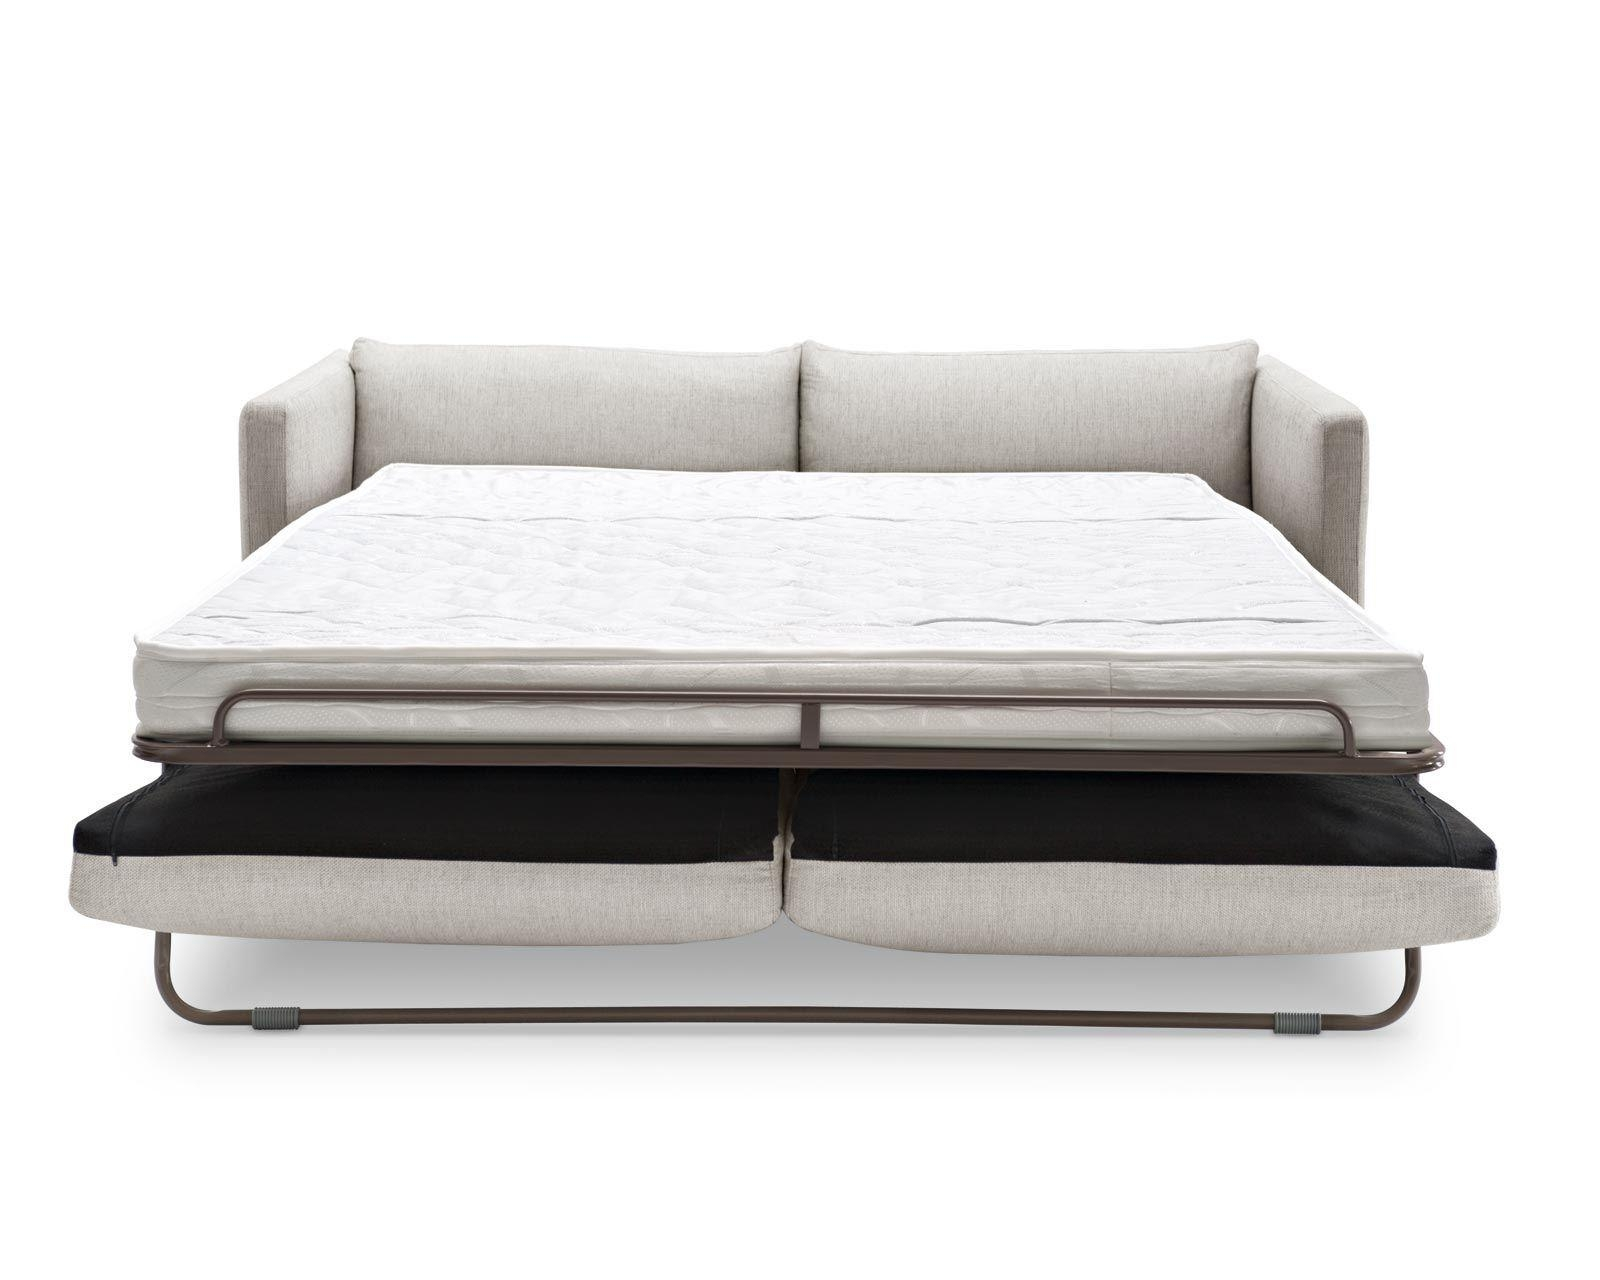 Sofas Center : Sleeper Sofa Mattress Support Comfort Cloud Pad Air With Sofa Beds With Mattress Support (View 6 of 20)